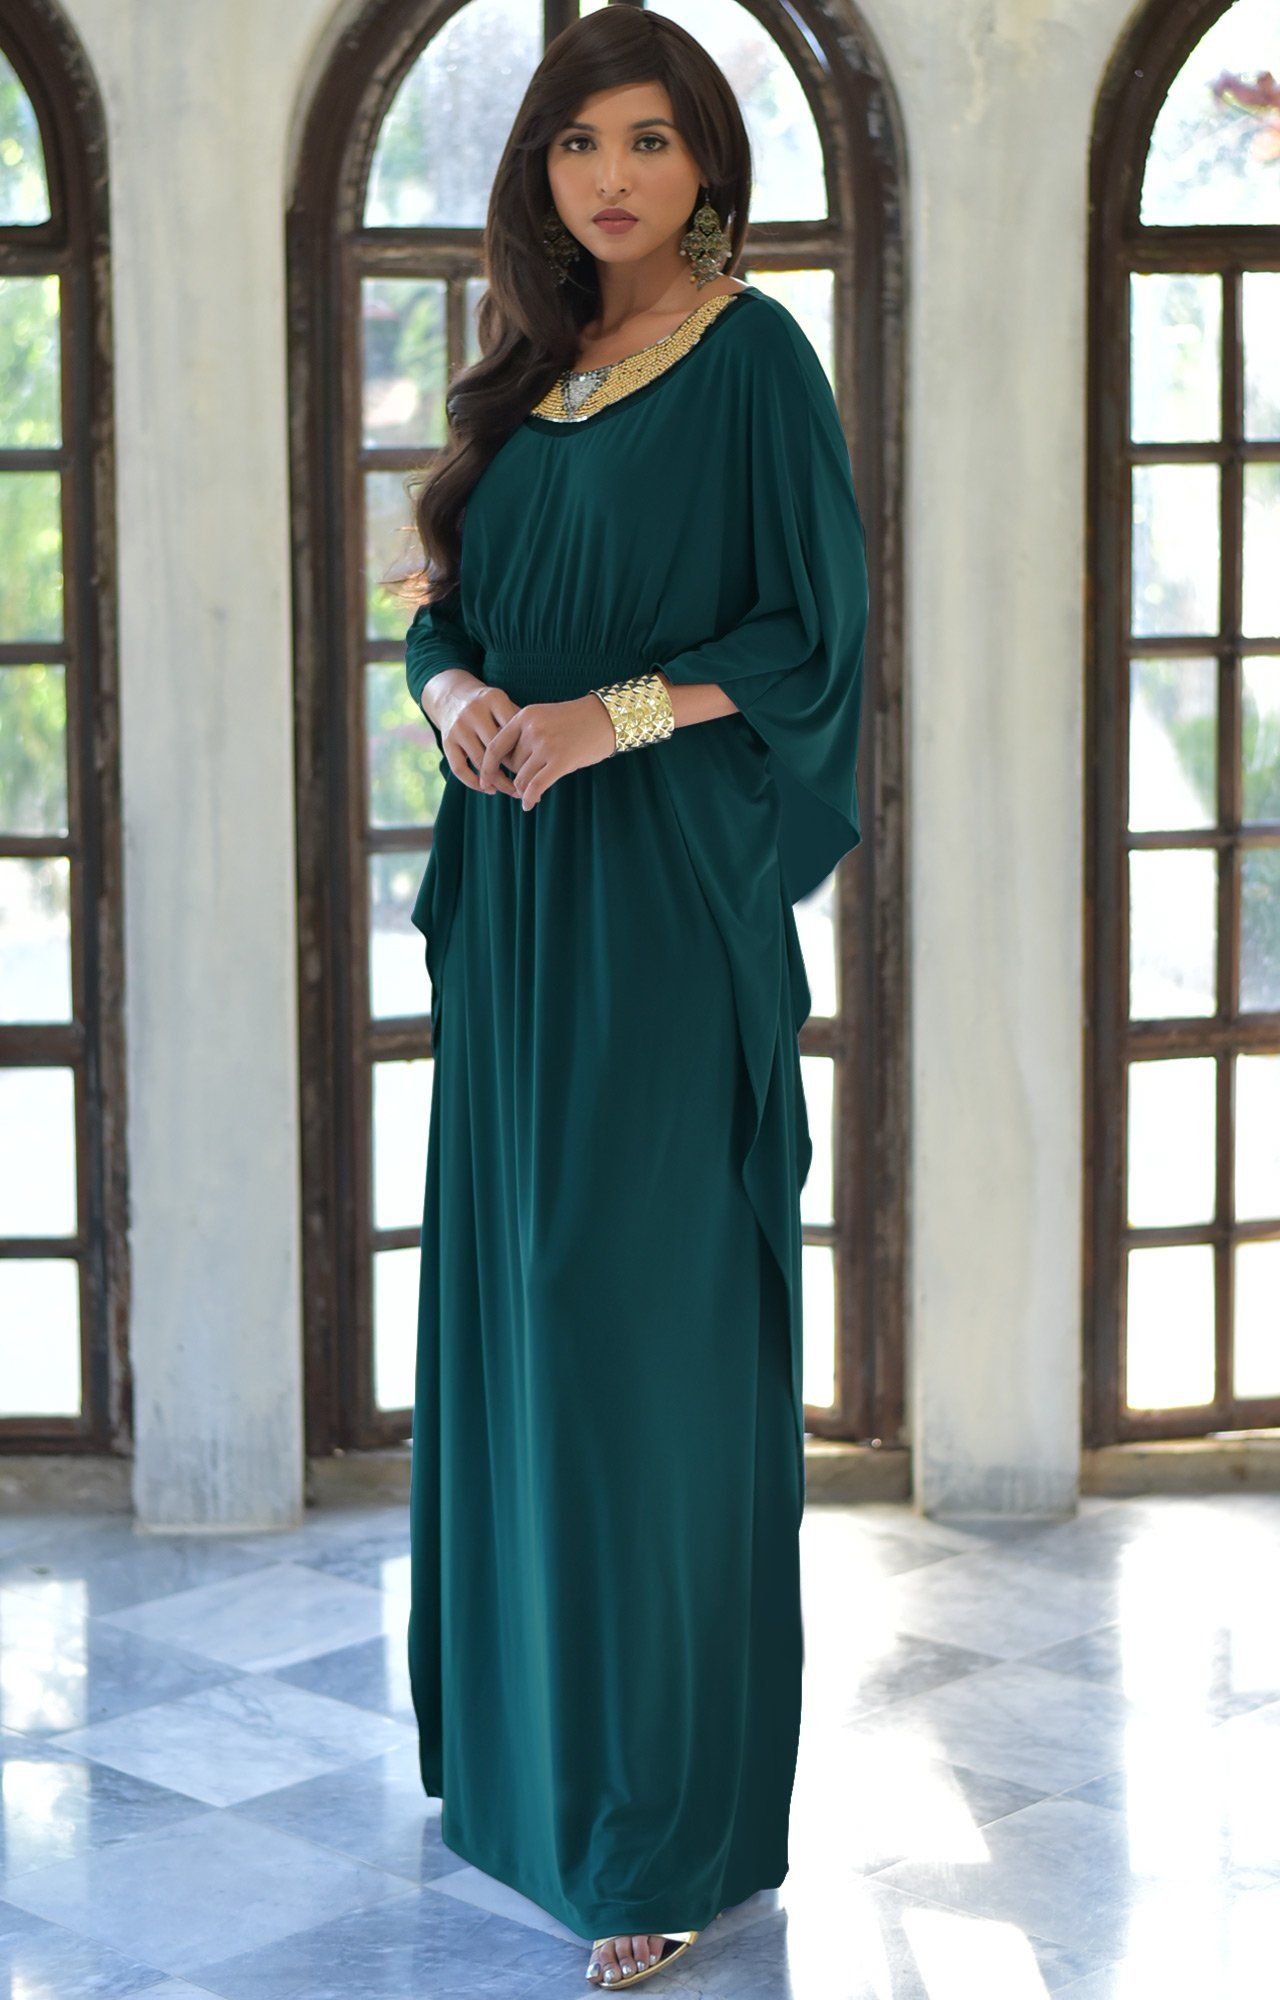 Morocan Party Dress for Pregnant